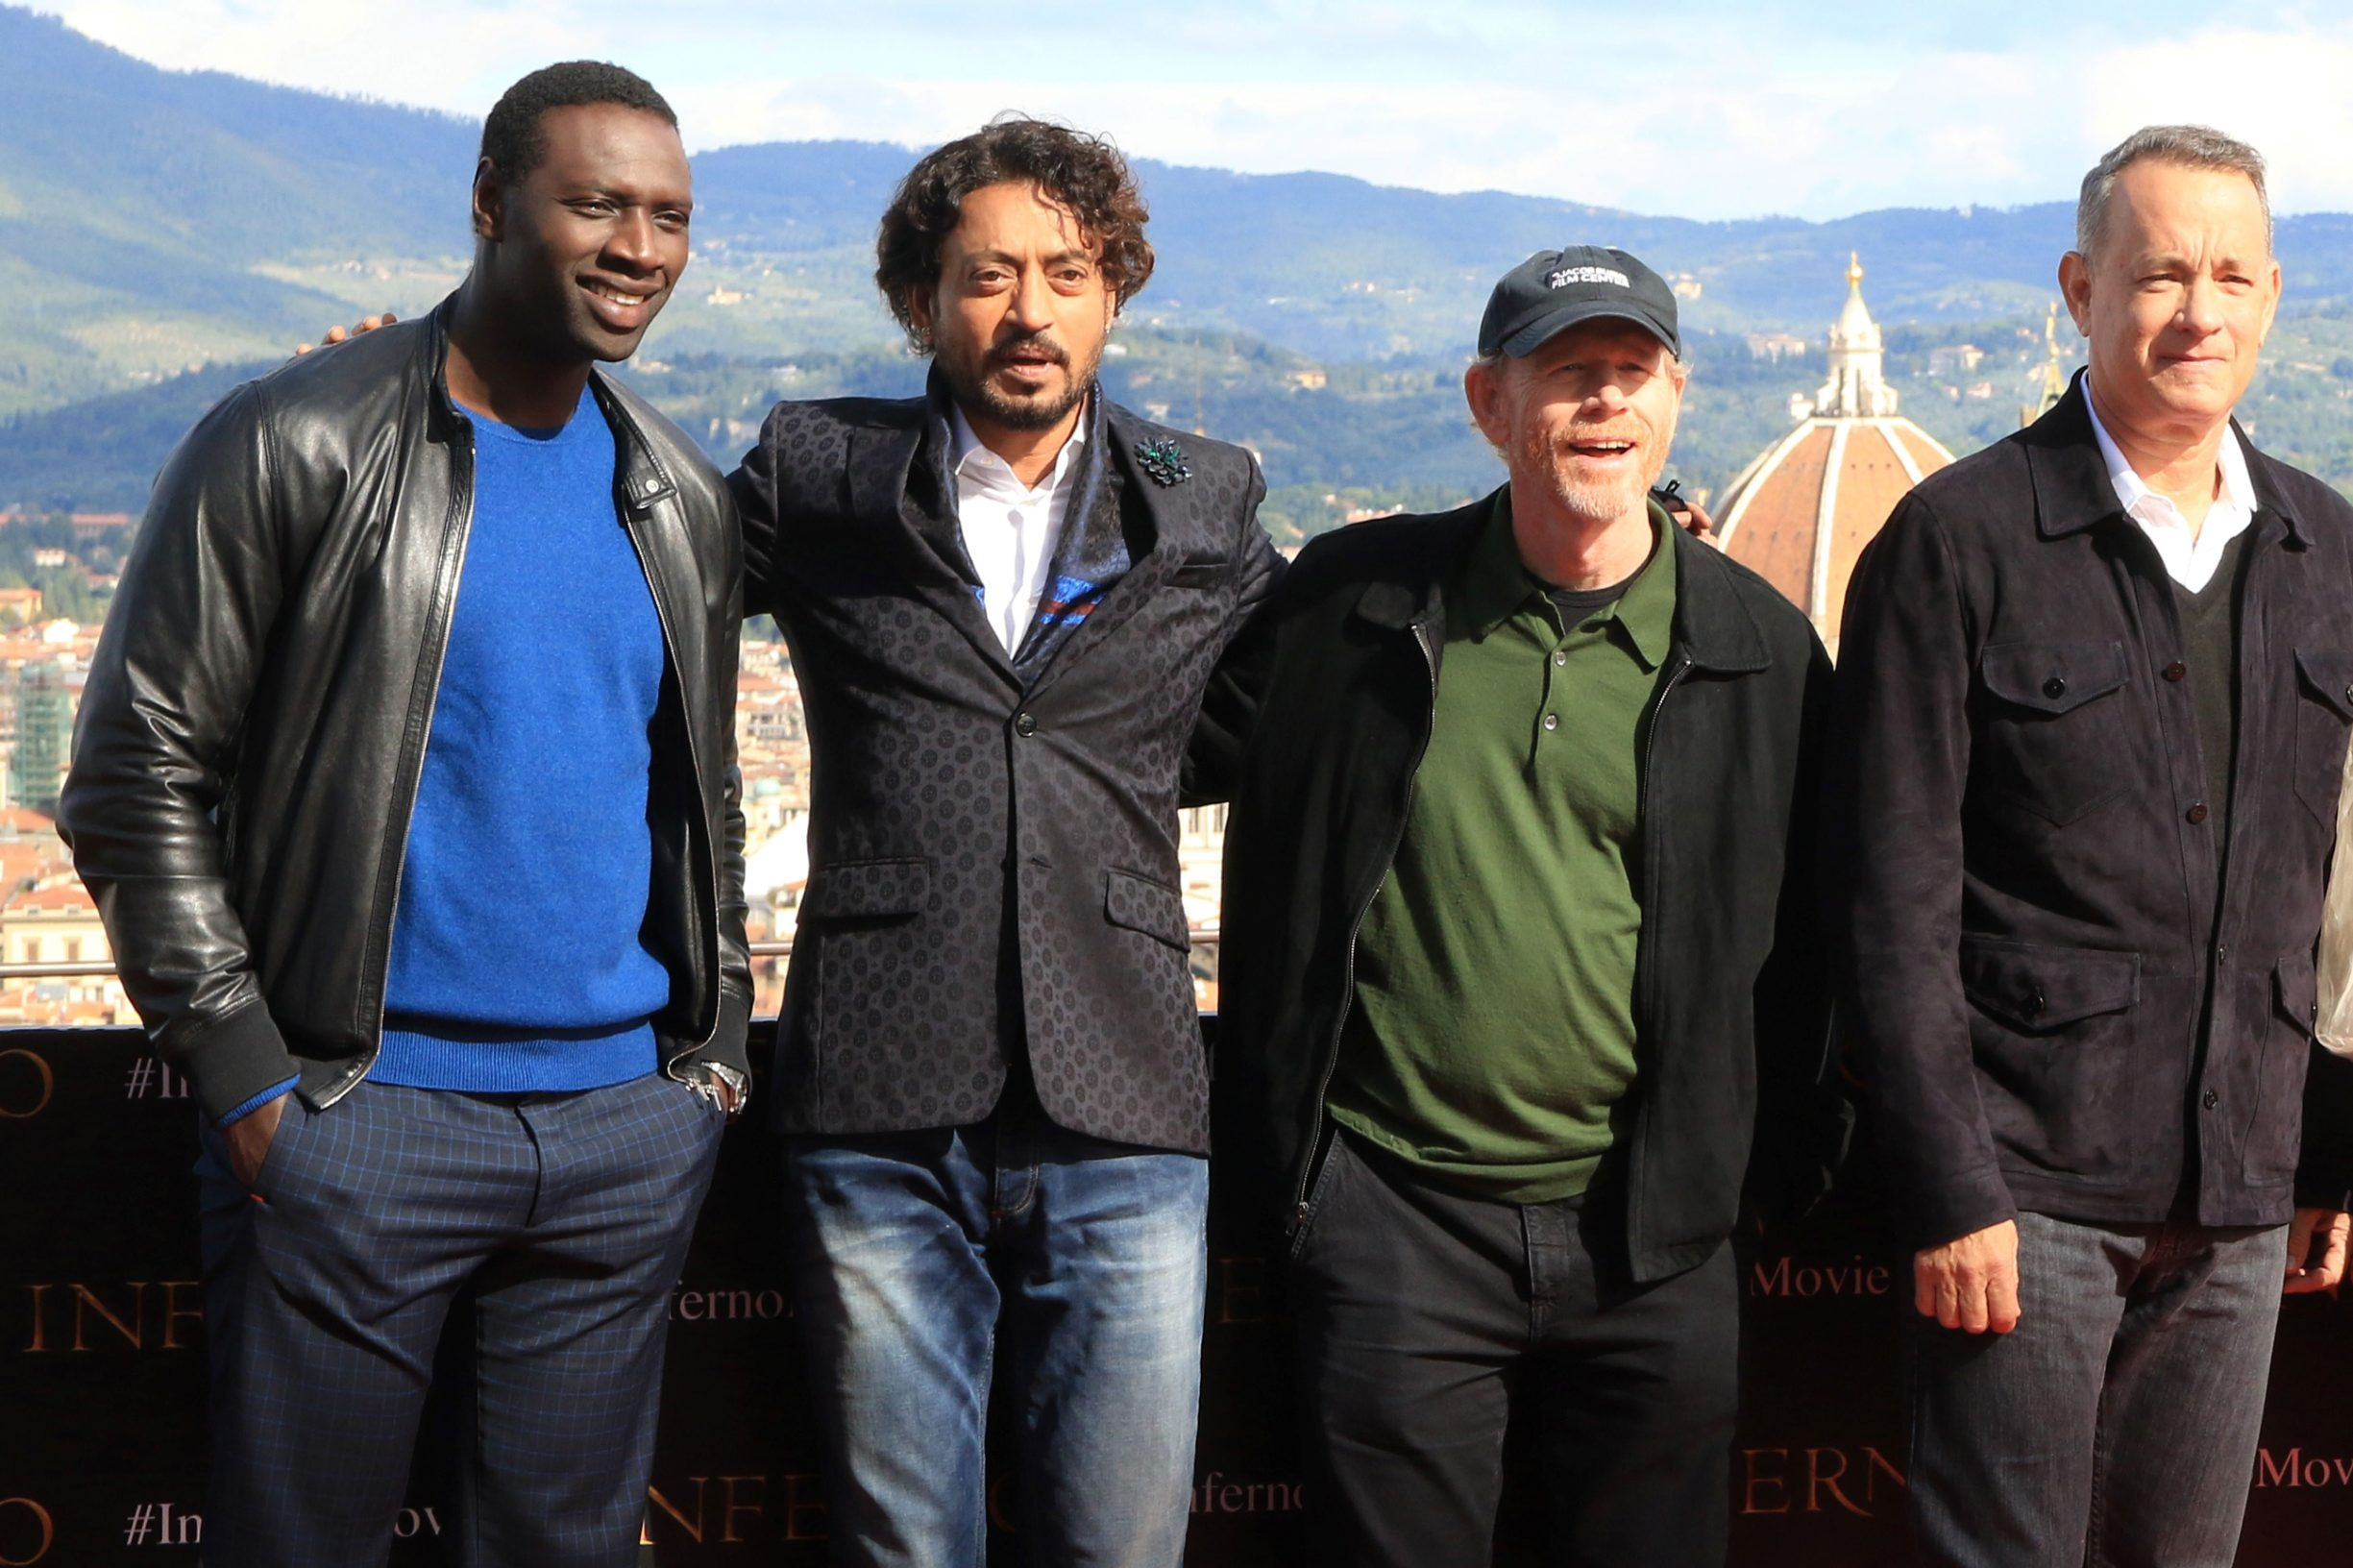 (FILES) In this file photo taken on October 07, 2016 (L-R) actors Omar Sy, Irrfan Khan, director Ron Howard and actor Tom Hanks pose during a photocall on the eve of the World Premiere of the movie